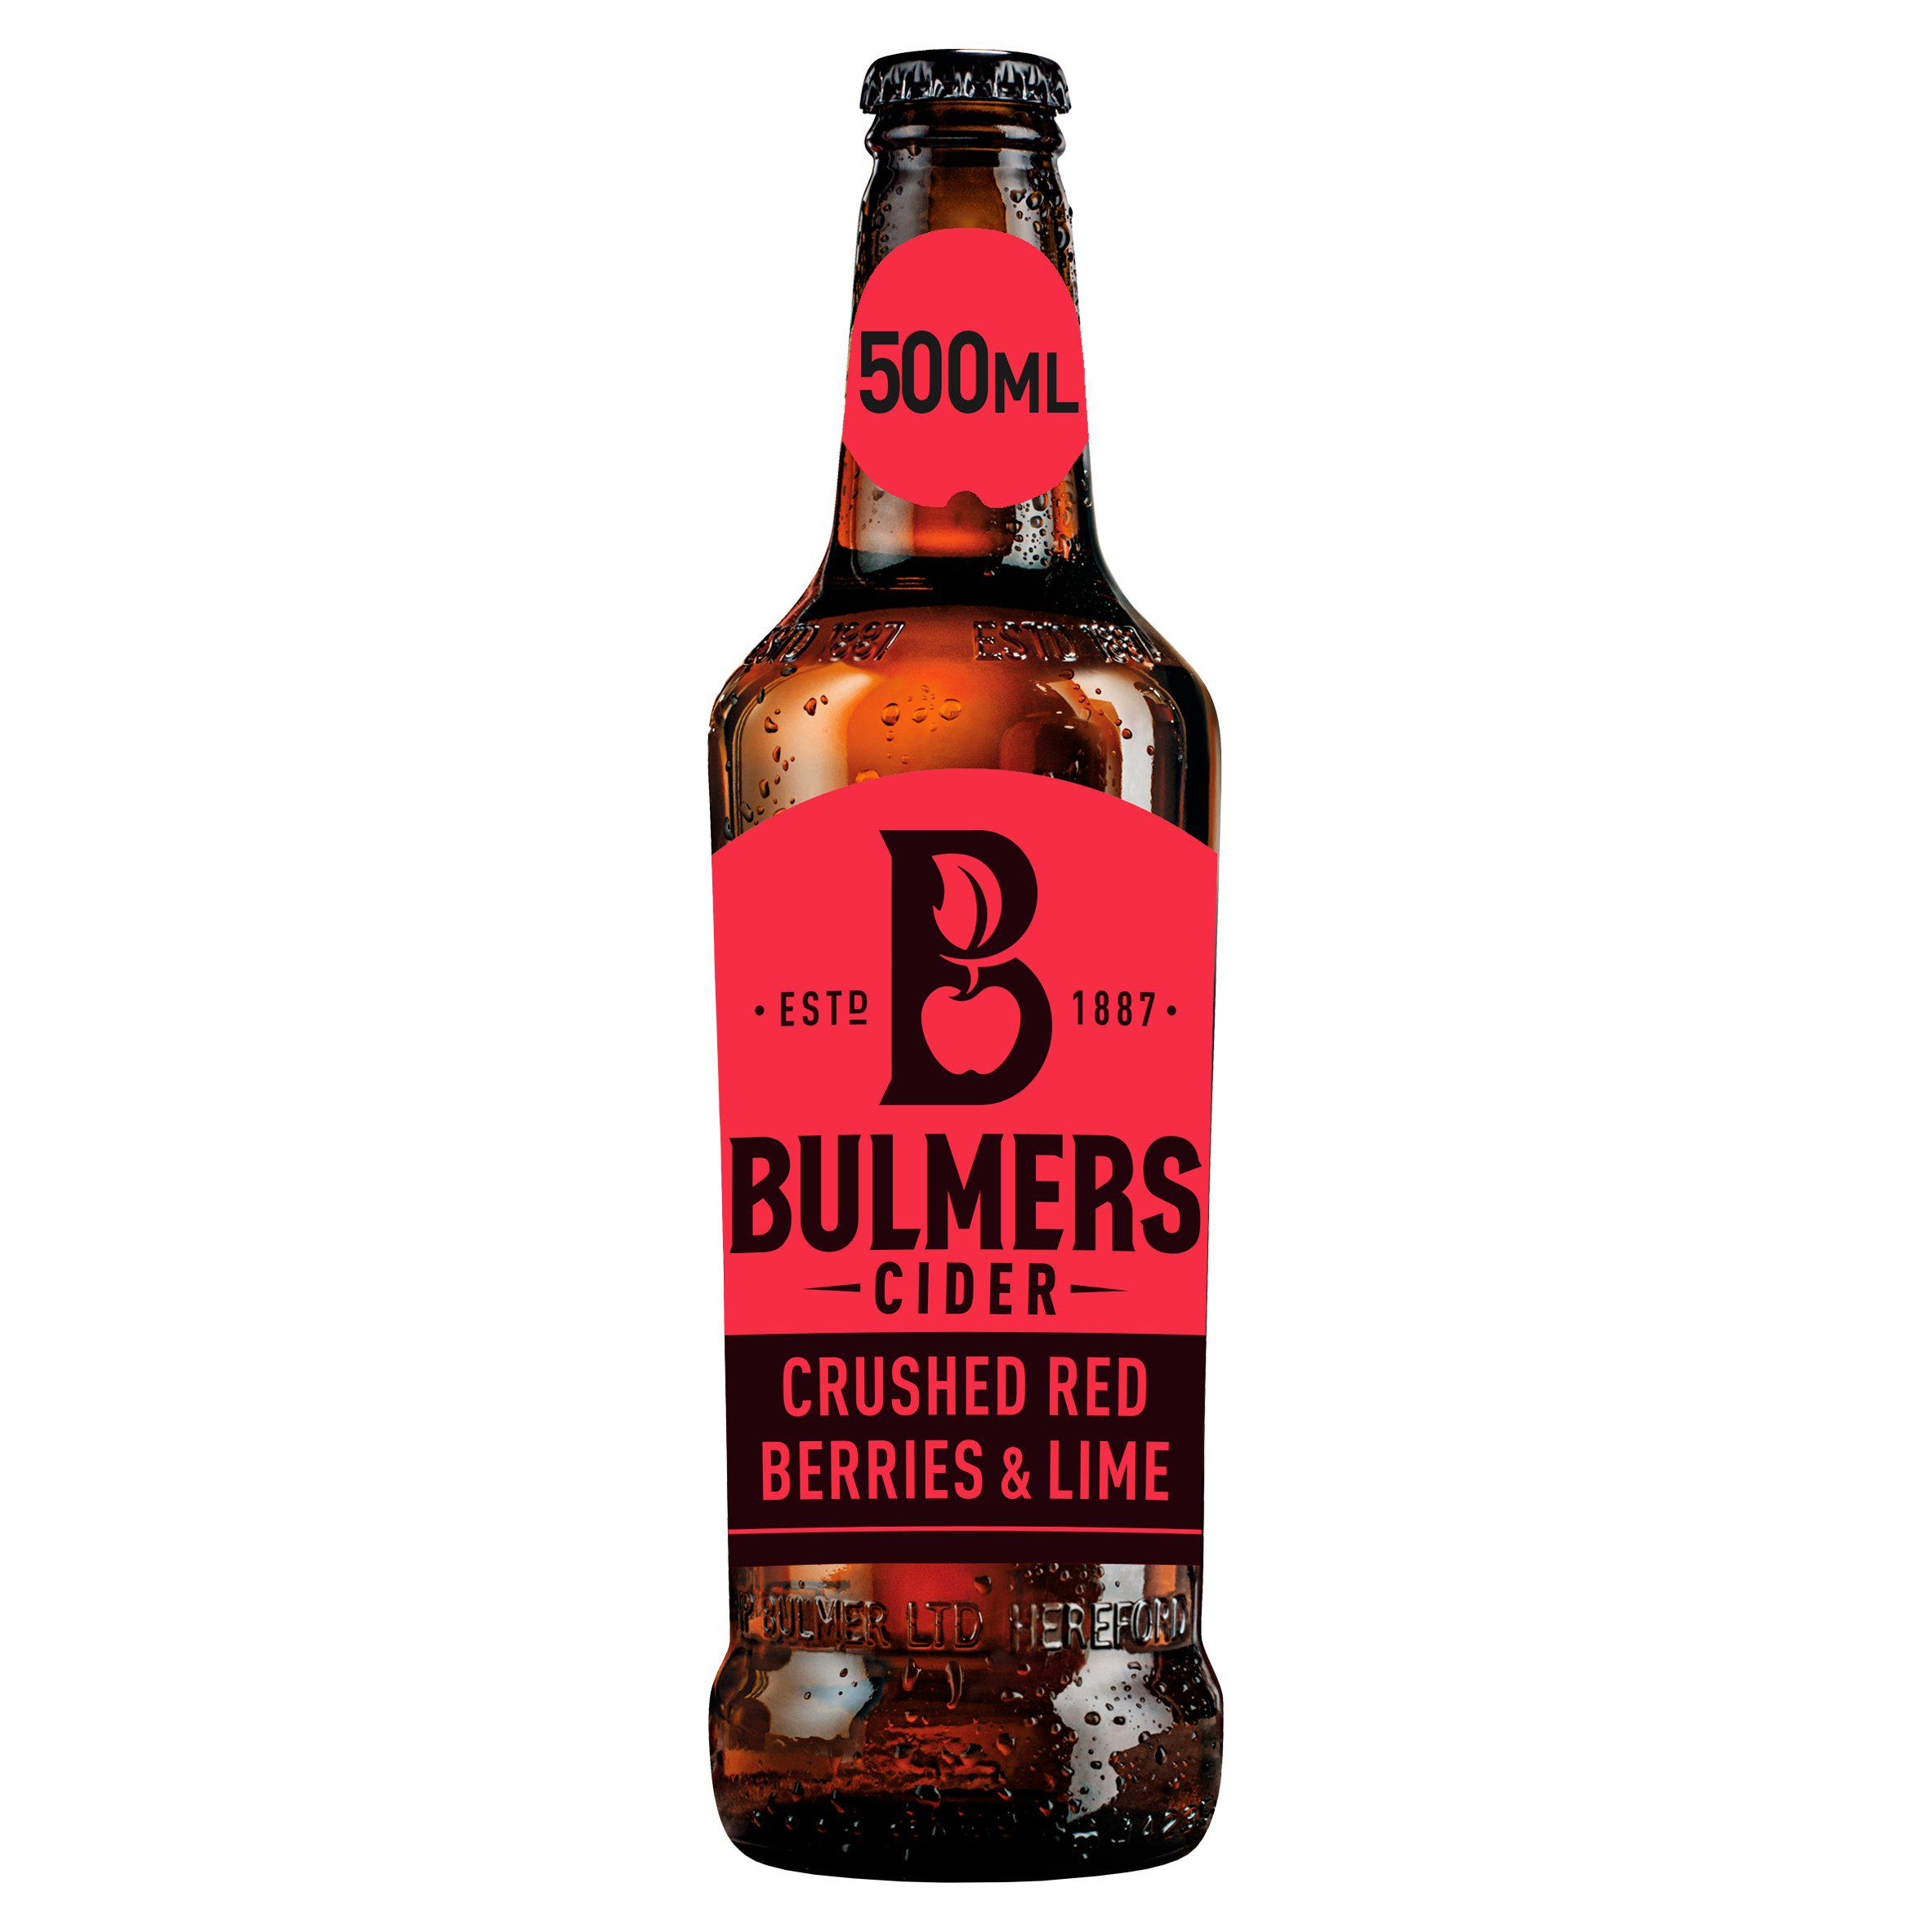 Bulmers Crushed Red Berries & Lime